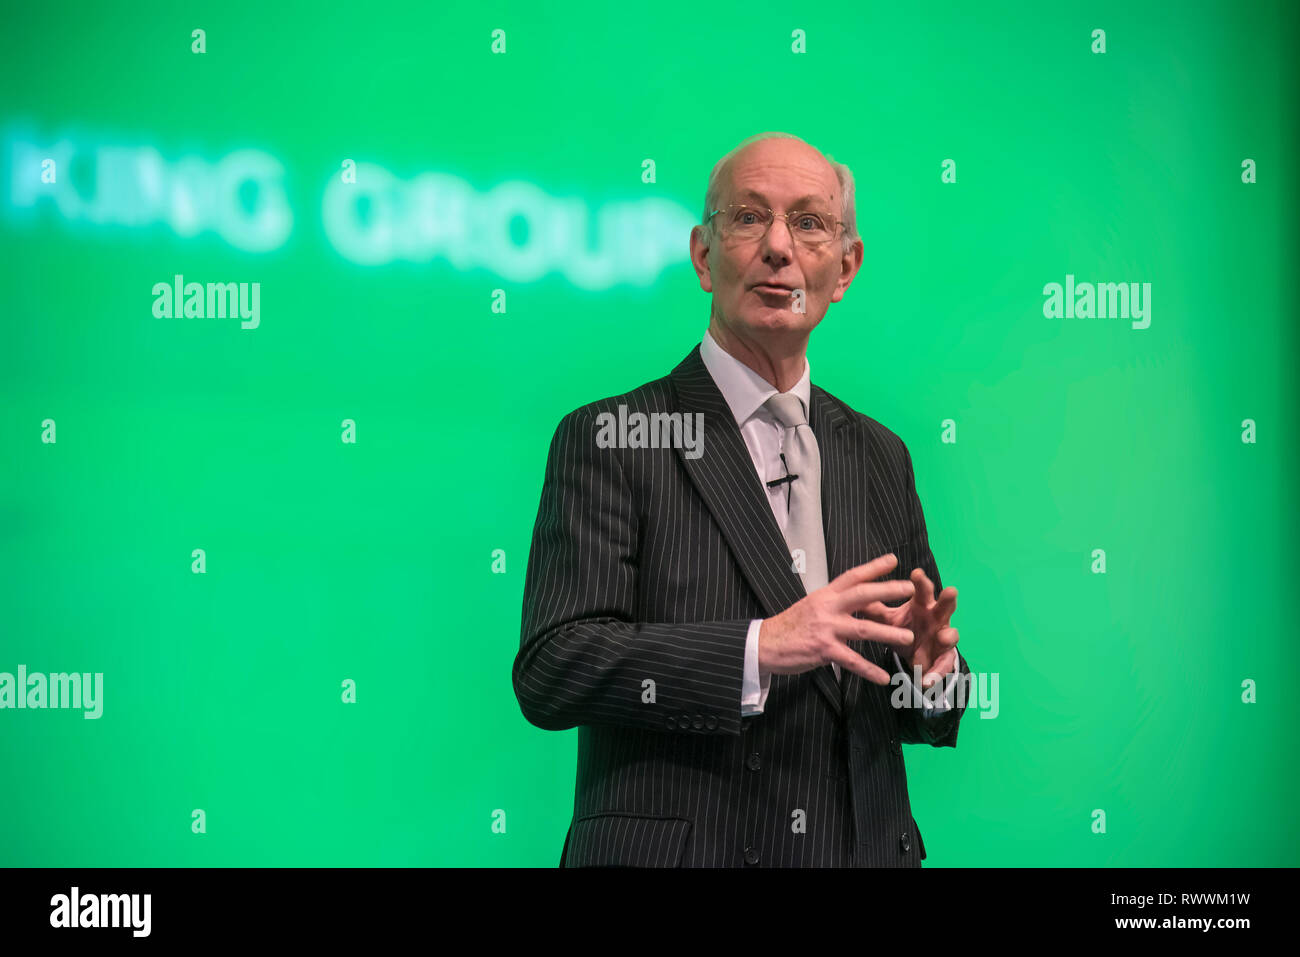 Lord Blackwell of Chairman of Lloyds Banking Group - Stock Image